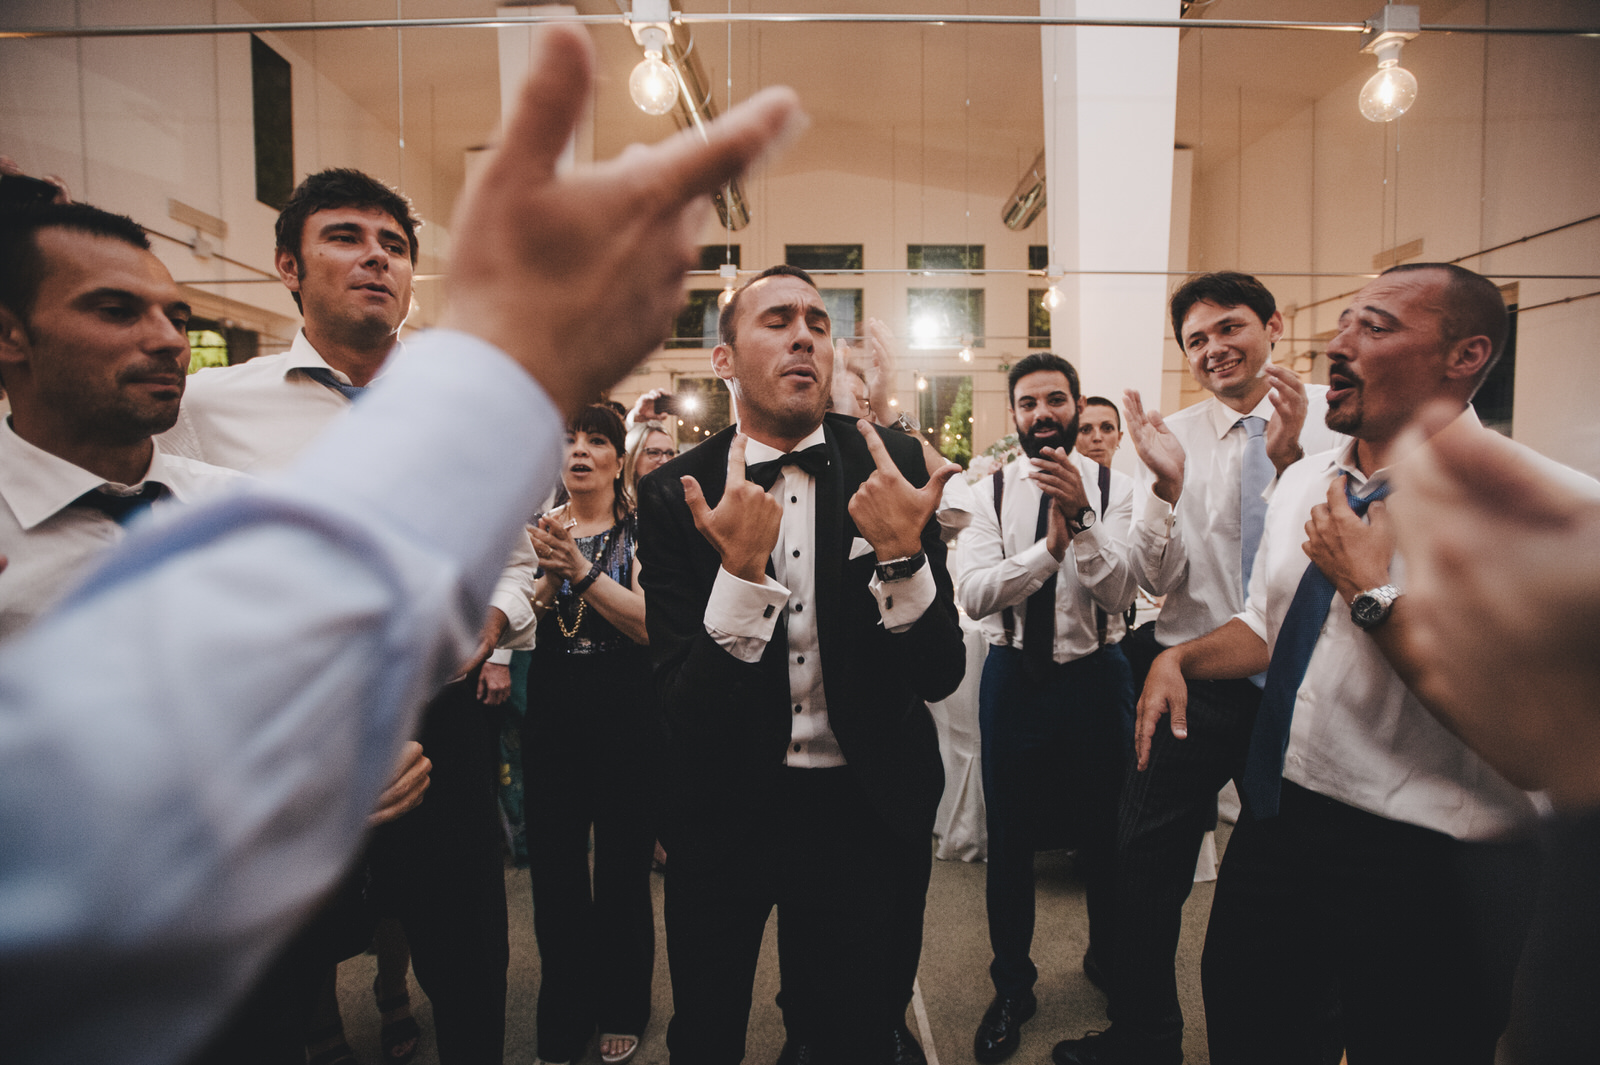 the groom dancing with his friends